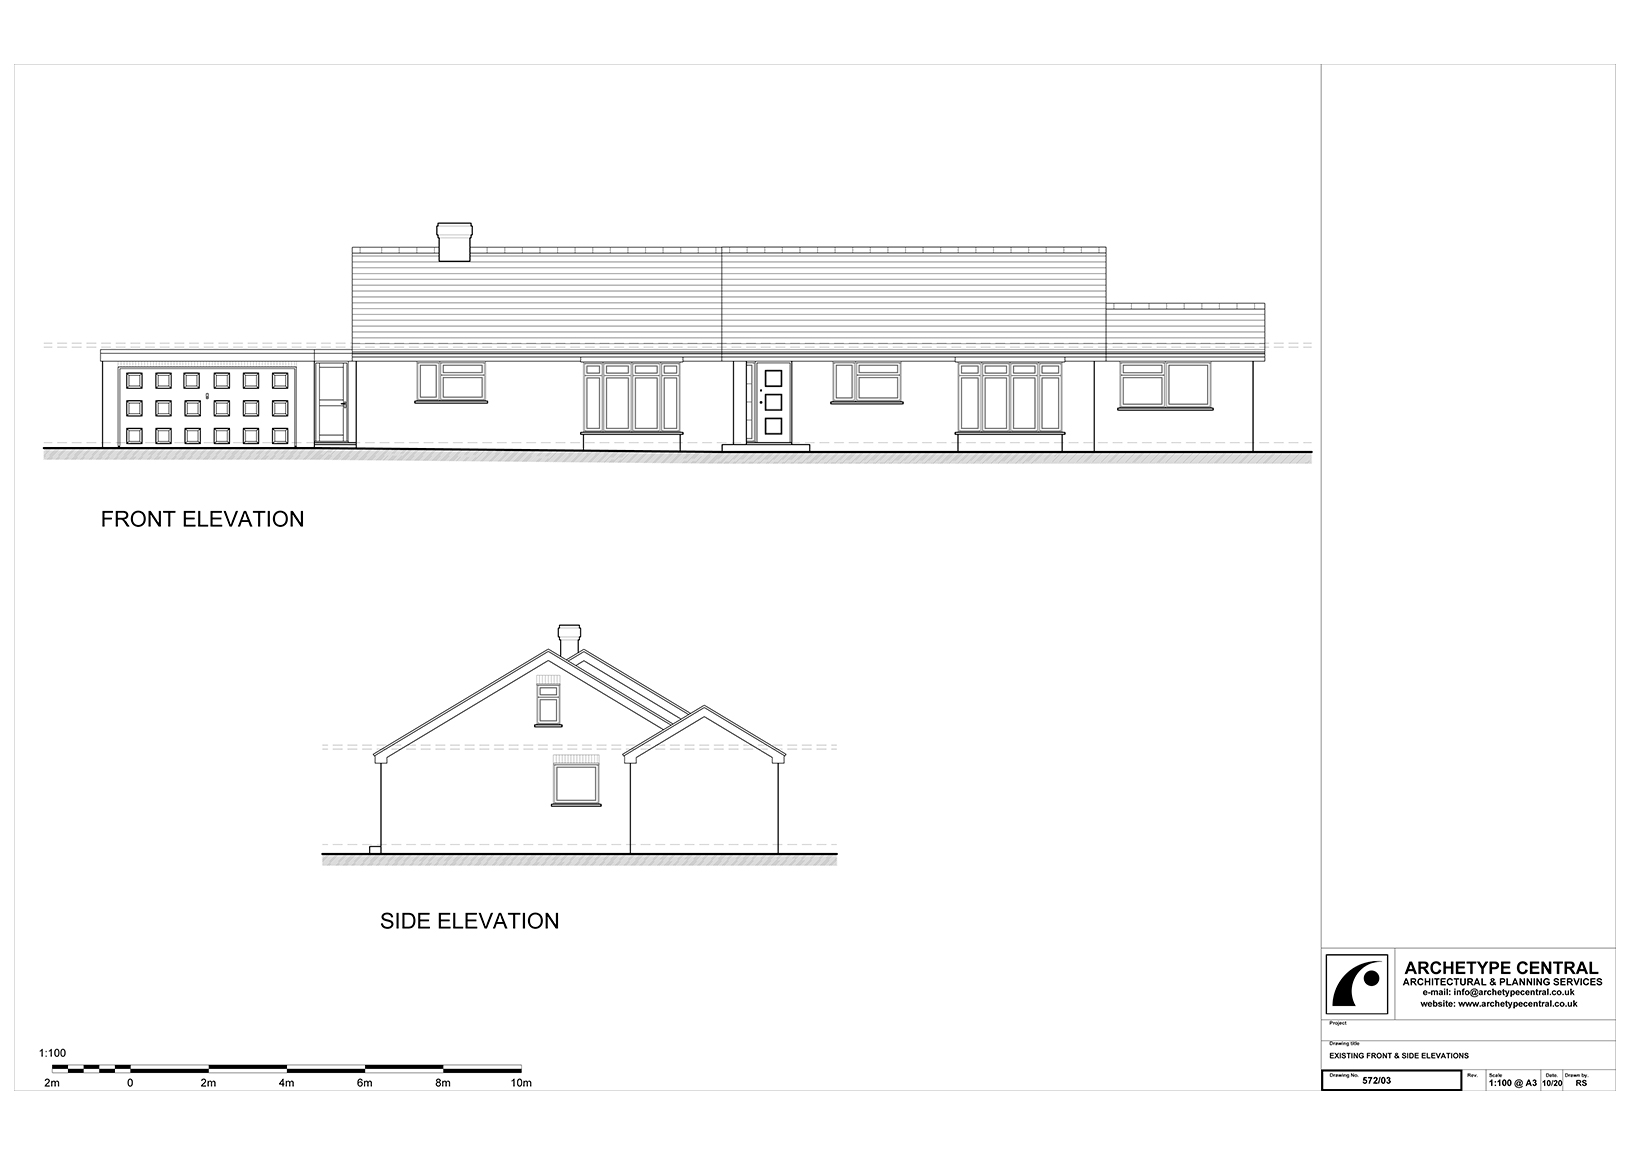 ABERDARE - EXISTING ELEVATIONS